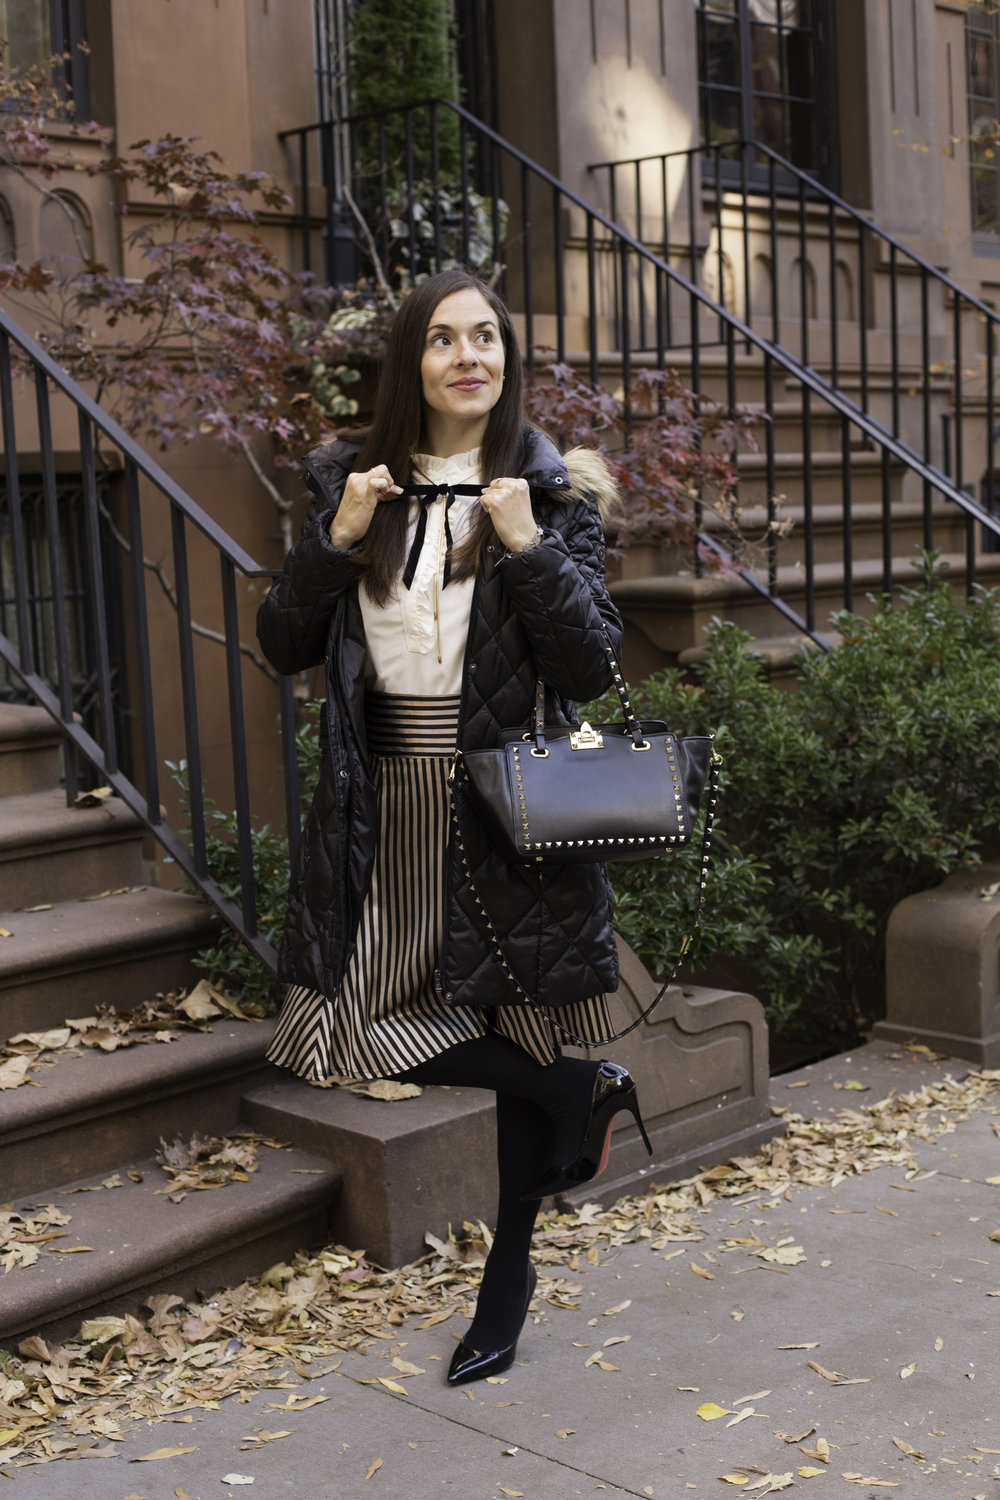 In my JCrew sleeveless ruffled collar top with Free People gold chain and attached velvet black bow, vintage striped skirt, black tights and Christian Louboutin pumps, Valentino Rock Stud bag and Guess coat. Photography by Francisco Graciano.